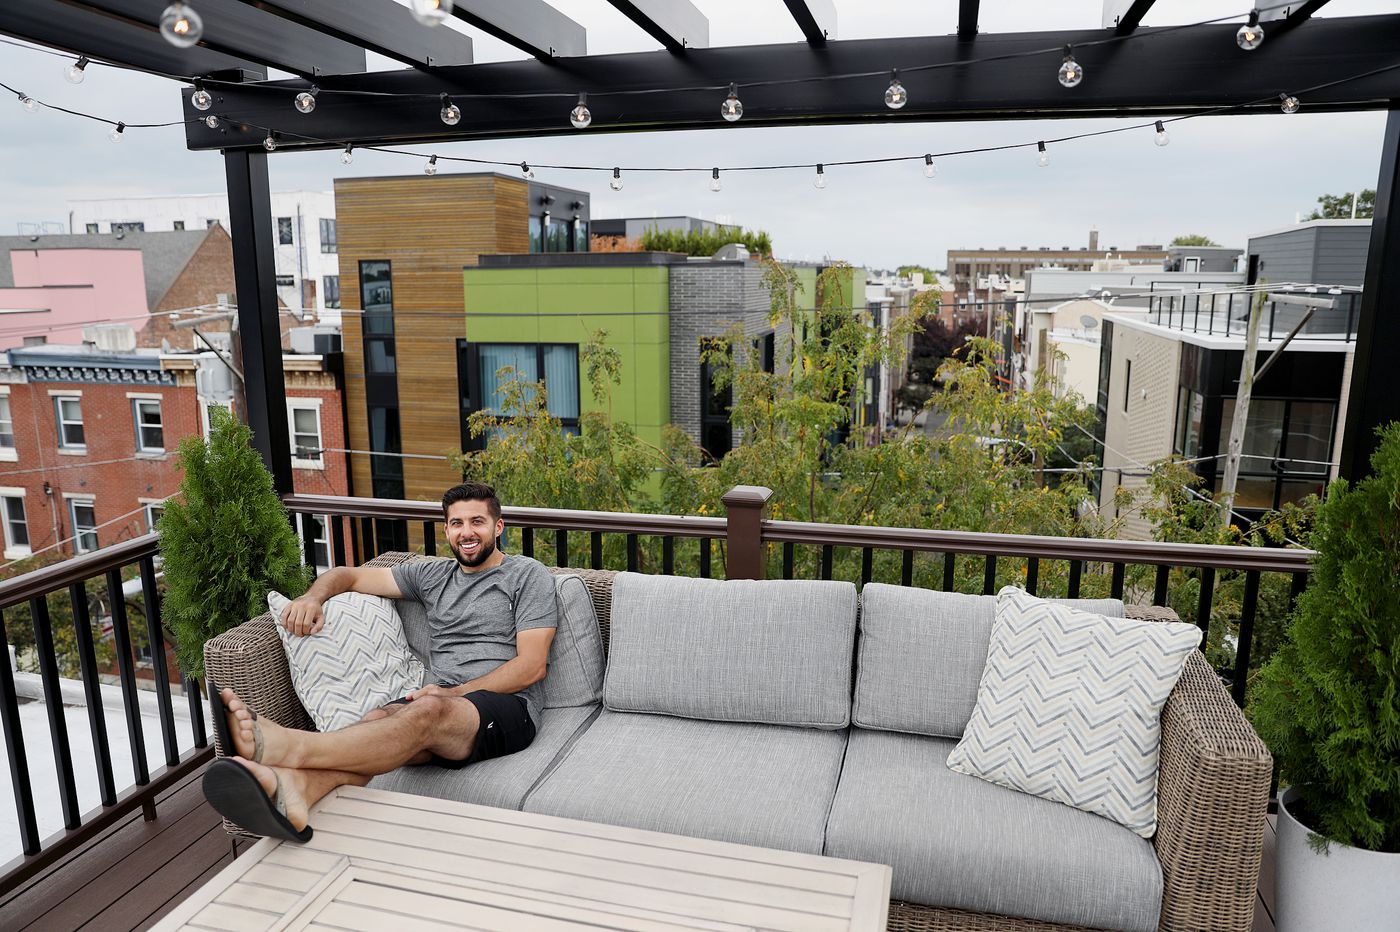 Roof Decks Are Becoming A Must Have In Philadelphia During The Pandemic